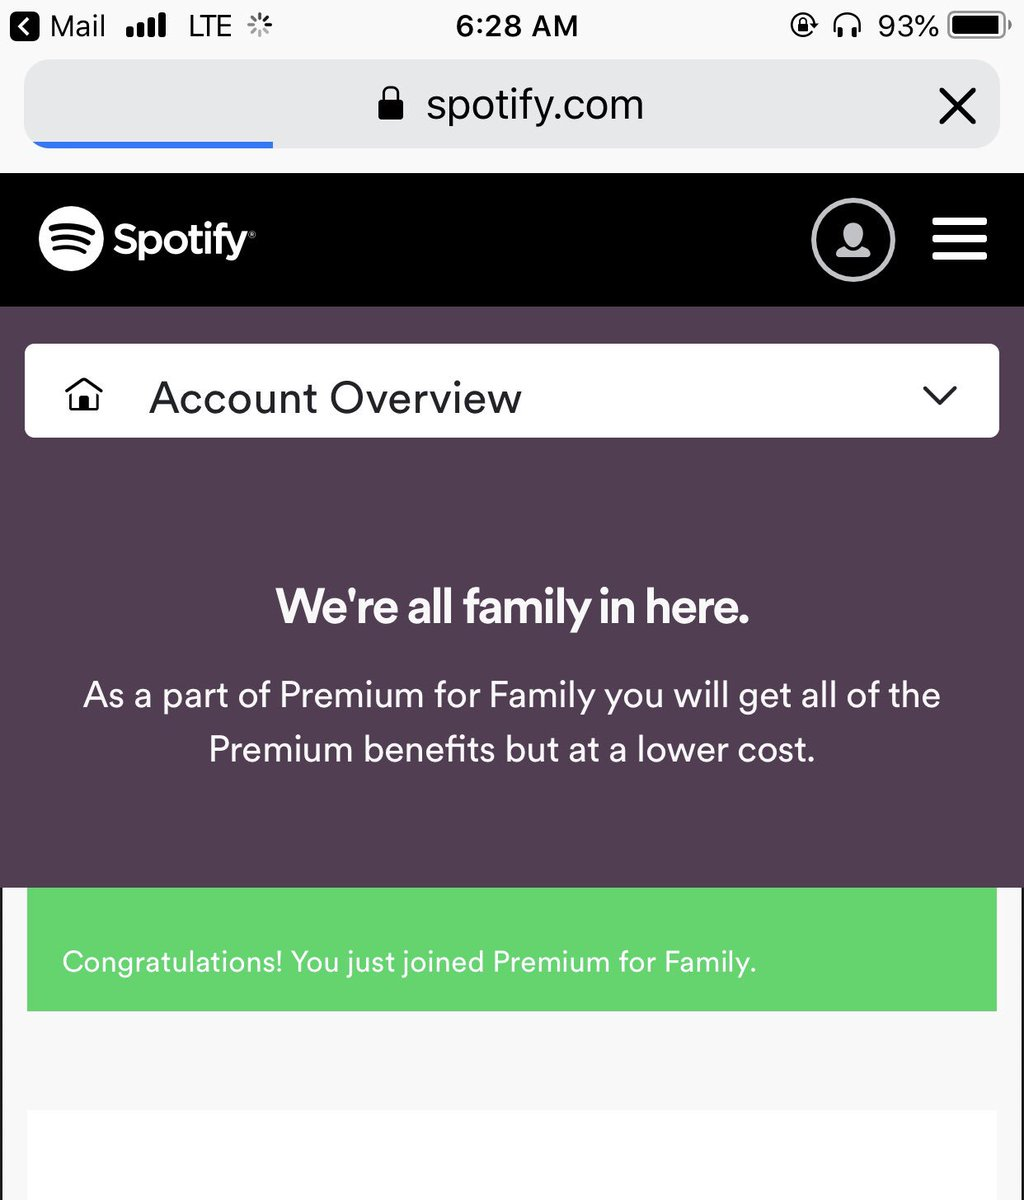 spotify premium lifetime on JumPic com